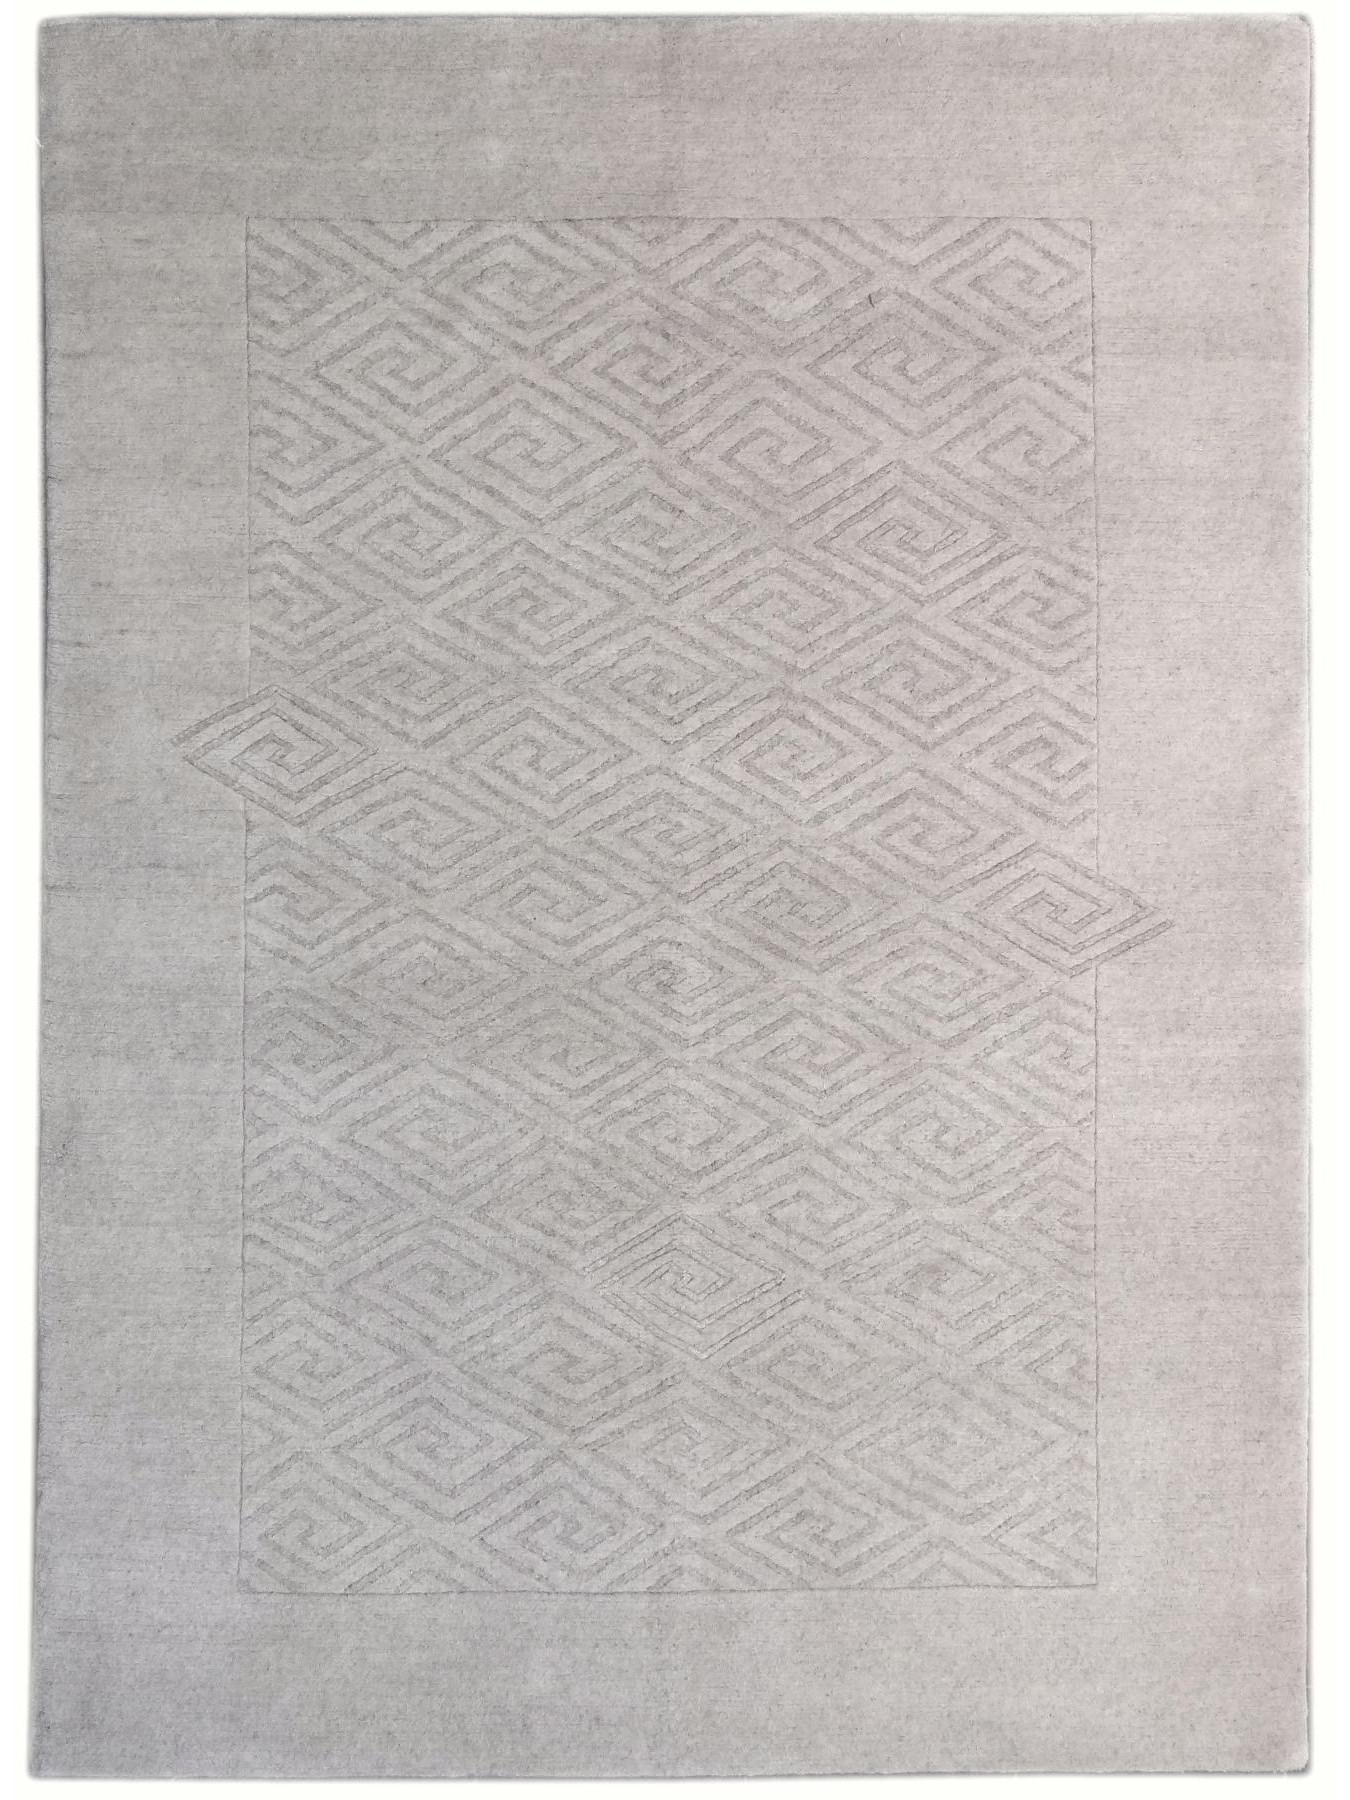 Design carpets - POEMES 11 - S5593